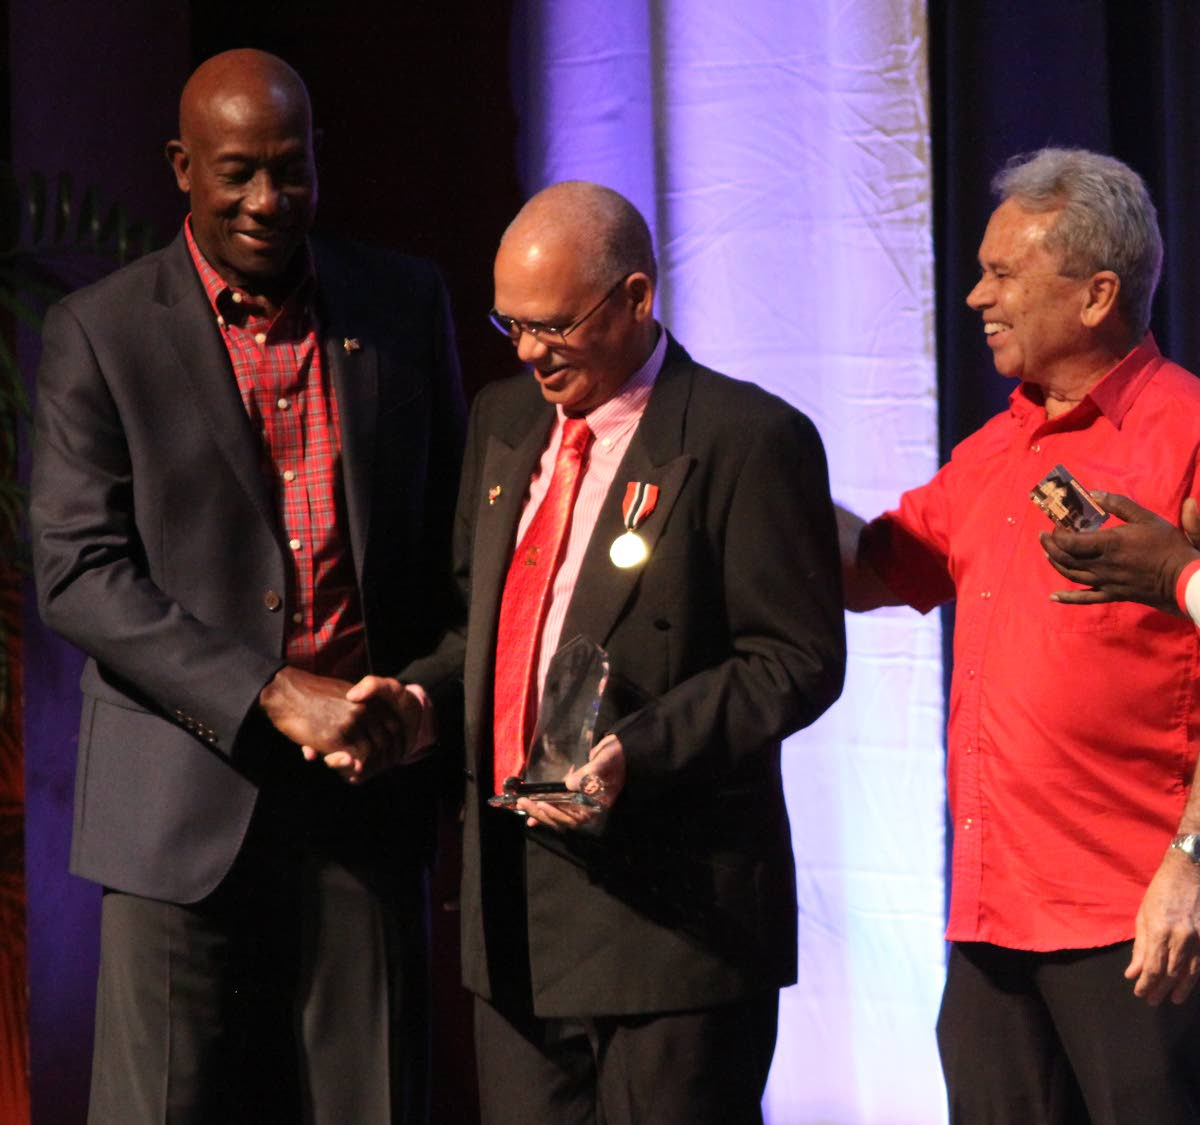 Prime Minister Dr Keith Rowley and Colm Imbert, PNM chairman and Finance Minister, congratulate stalwart Ashton Ford during the party's 63rd anniversary celebrations at NAPA, Port of Spain yesterday. PHOTO BY ANGELO MARCELLE